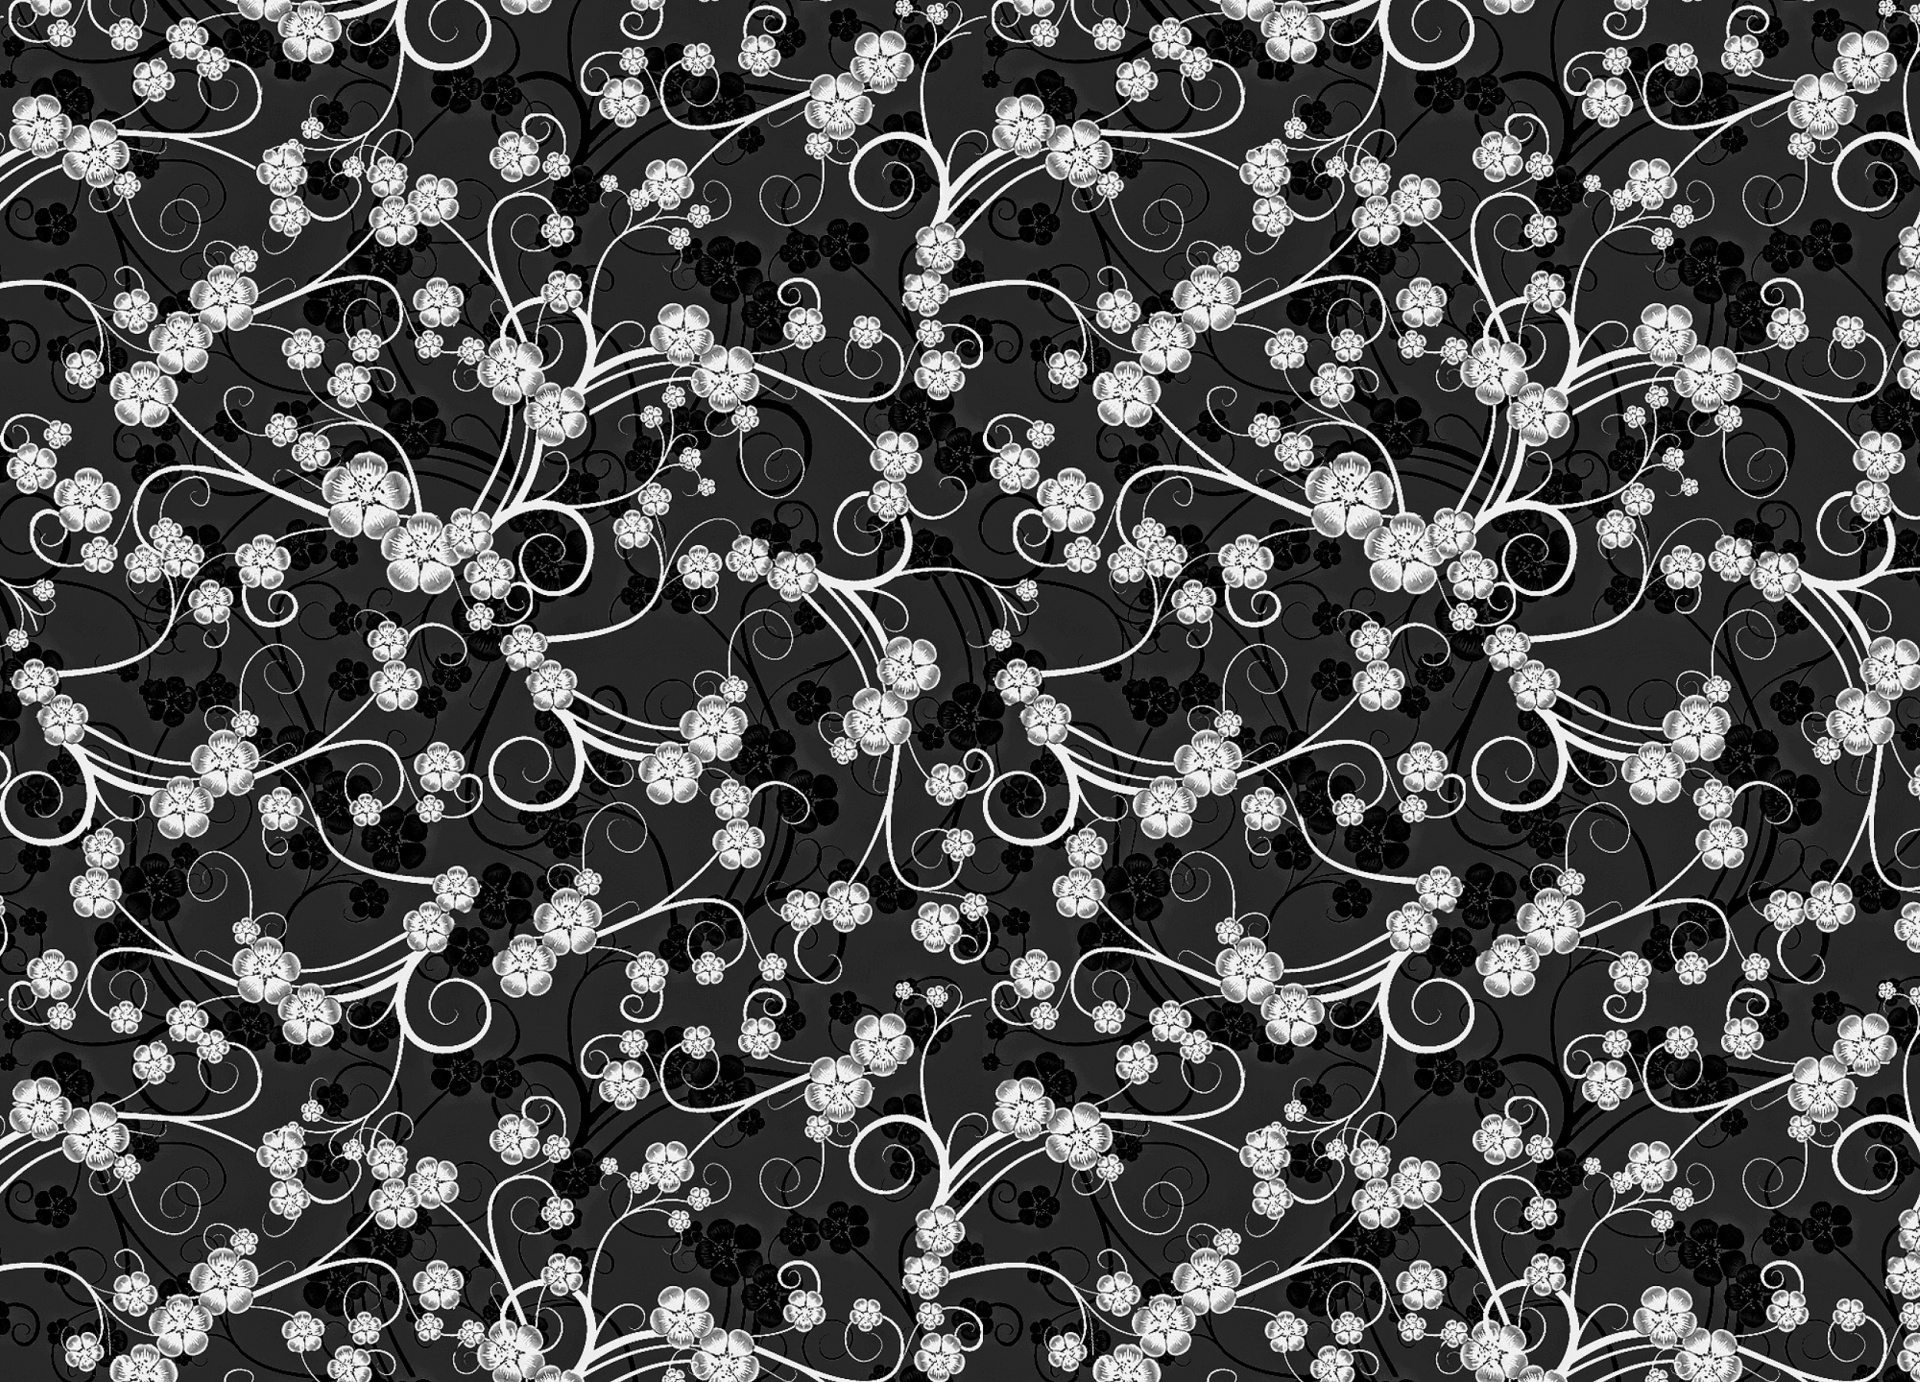 Black White Floral Pattern Background Free Image From Needpix Com